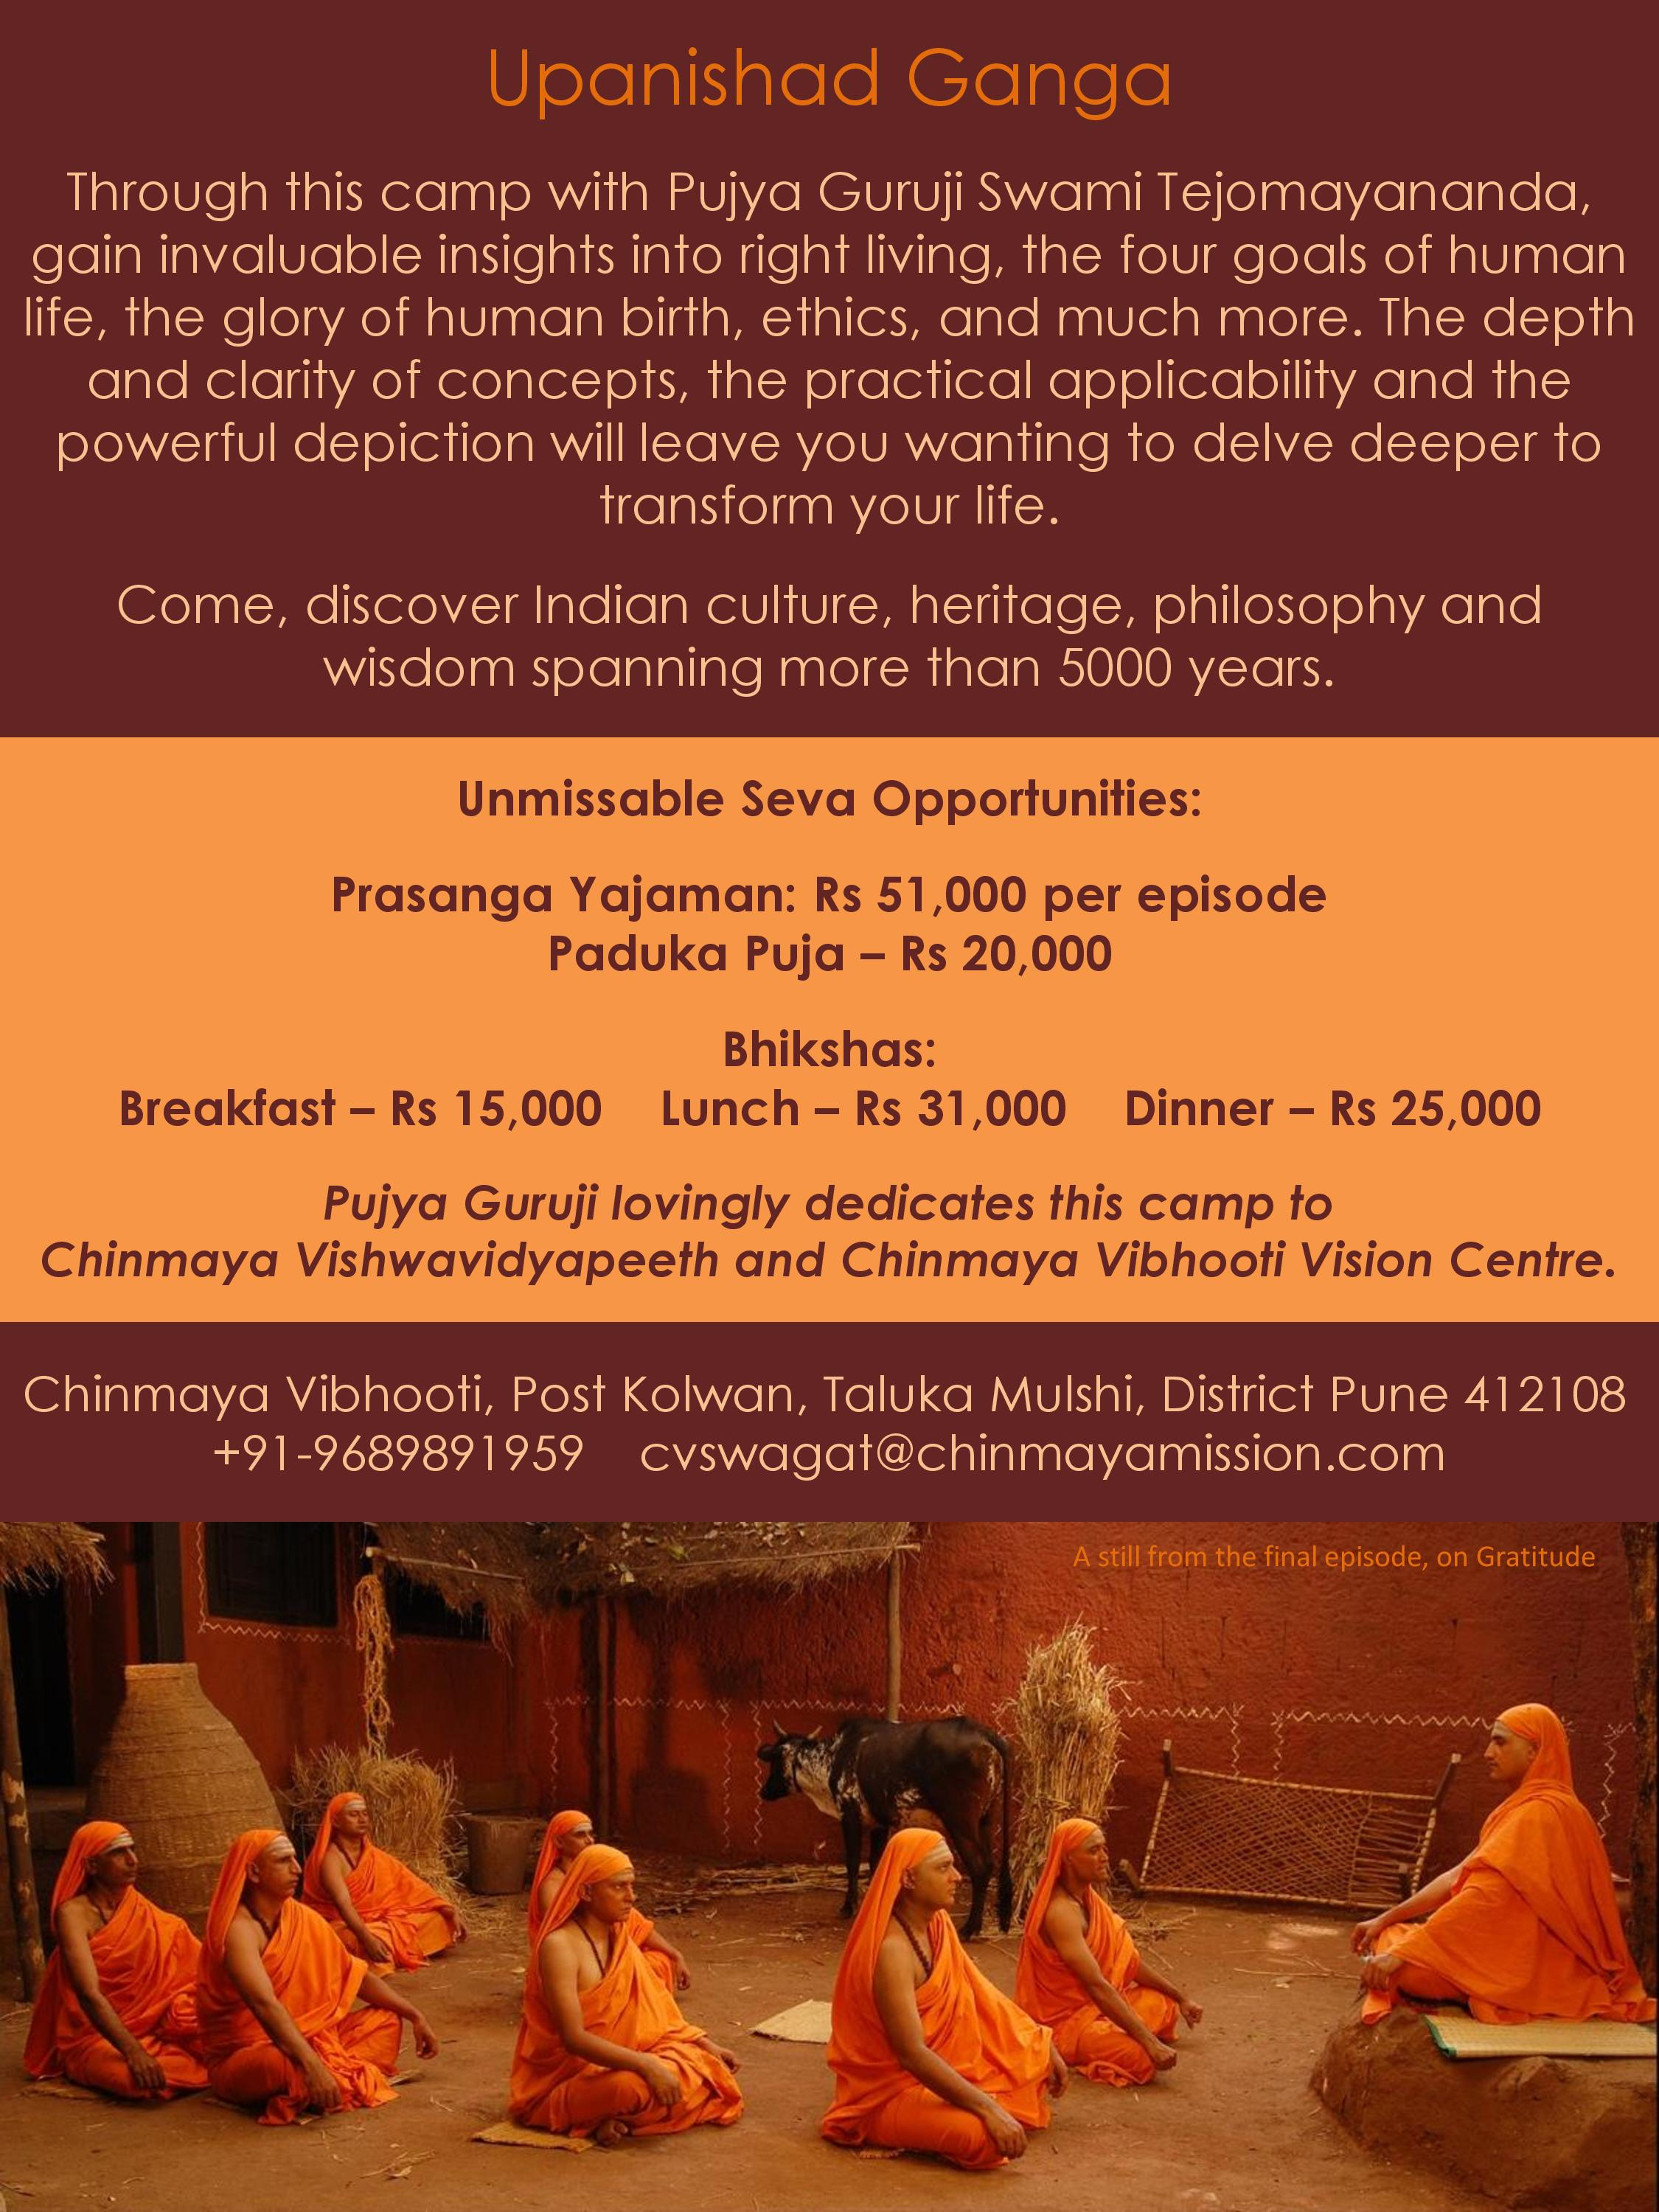 indian culture and ethics There are many differences between indian culture and western culture one such difference is in indian culture, joint families are common conversely, in western culture, small families are there.